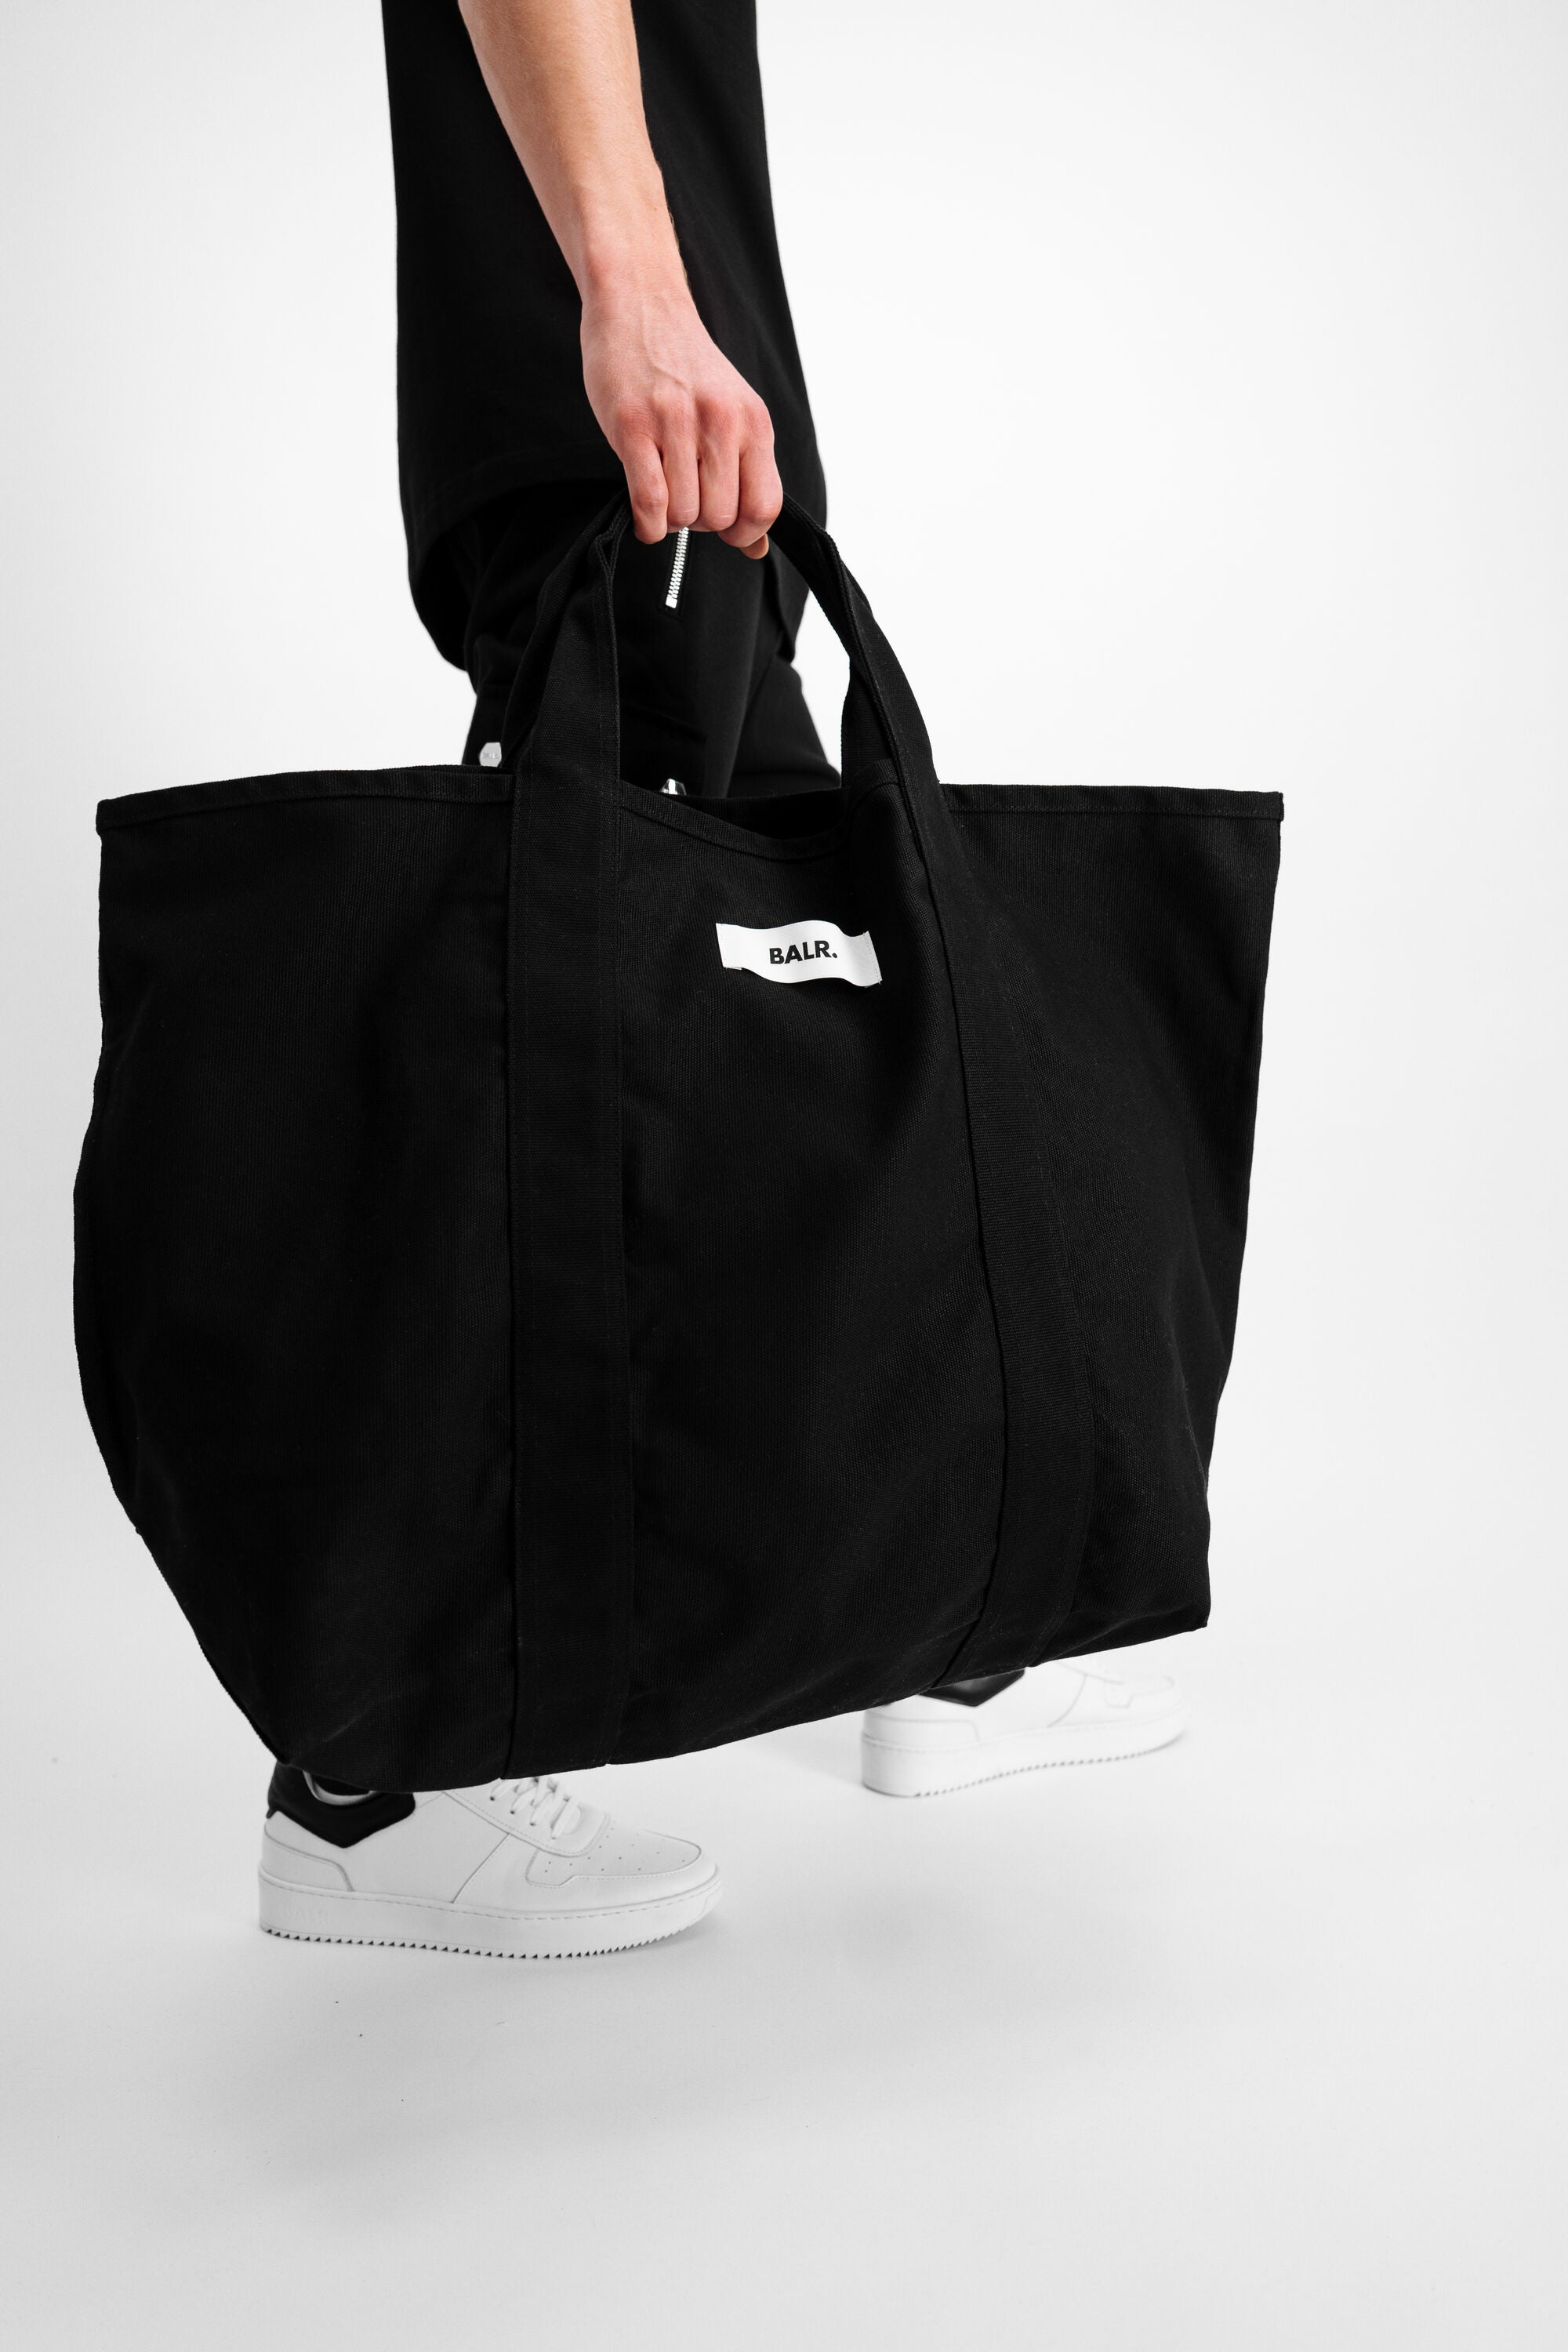 Clean Label Tote Bag Large Jet